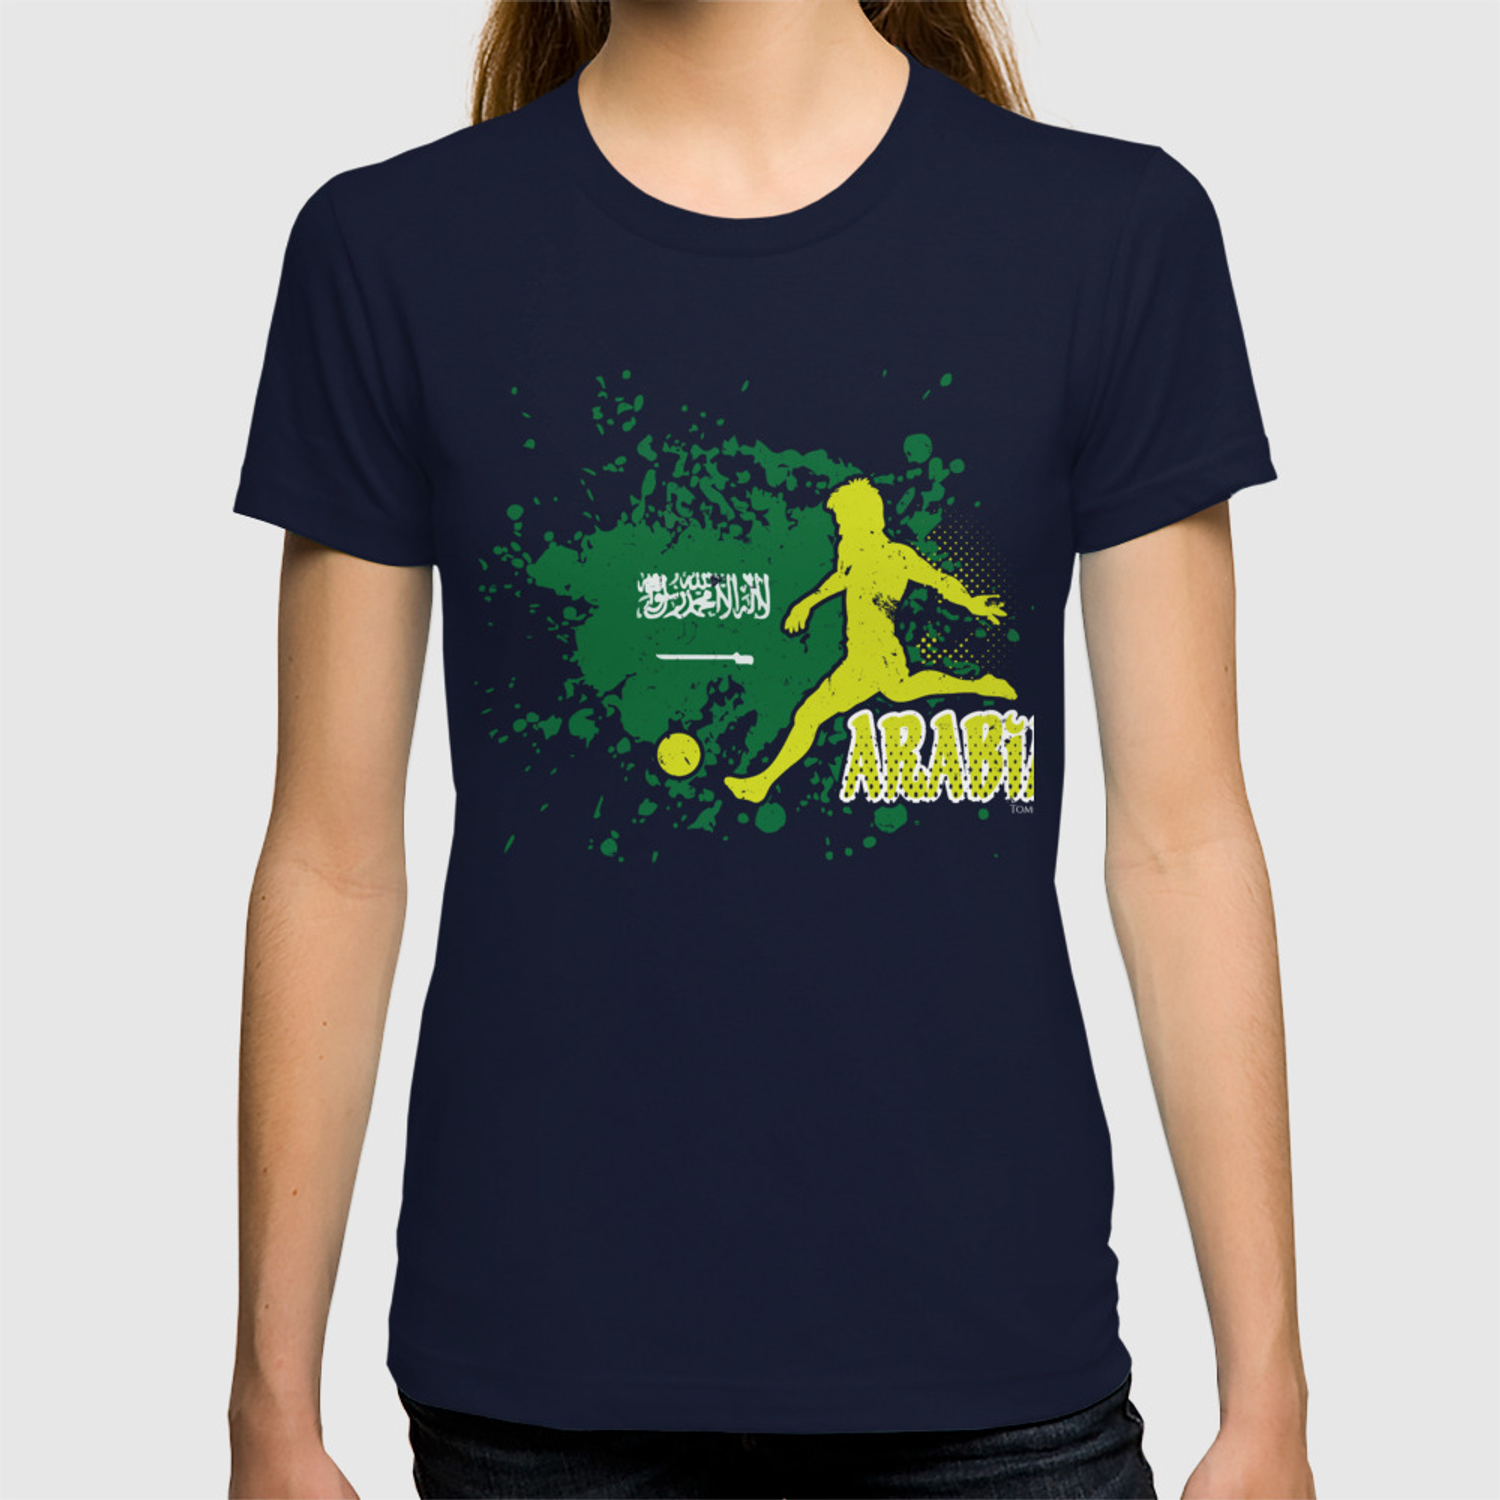 new product d7583 f6506 Football Worldcup Saudi Arabia Saudis Arabians Soccer Team Sports  Footballer Rugby Gift T-shirt